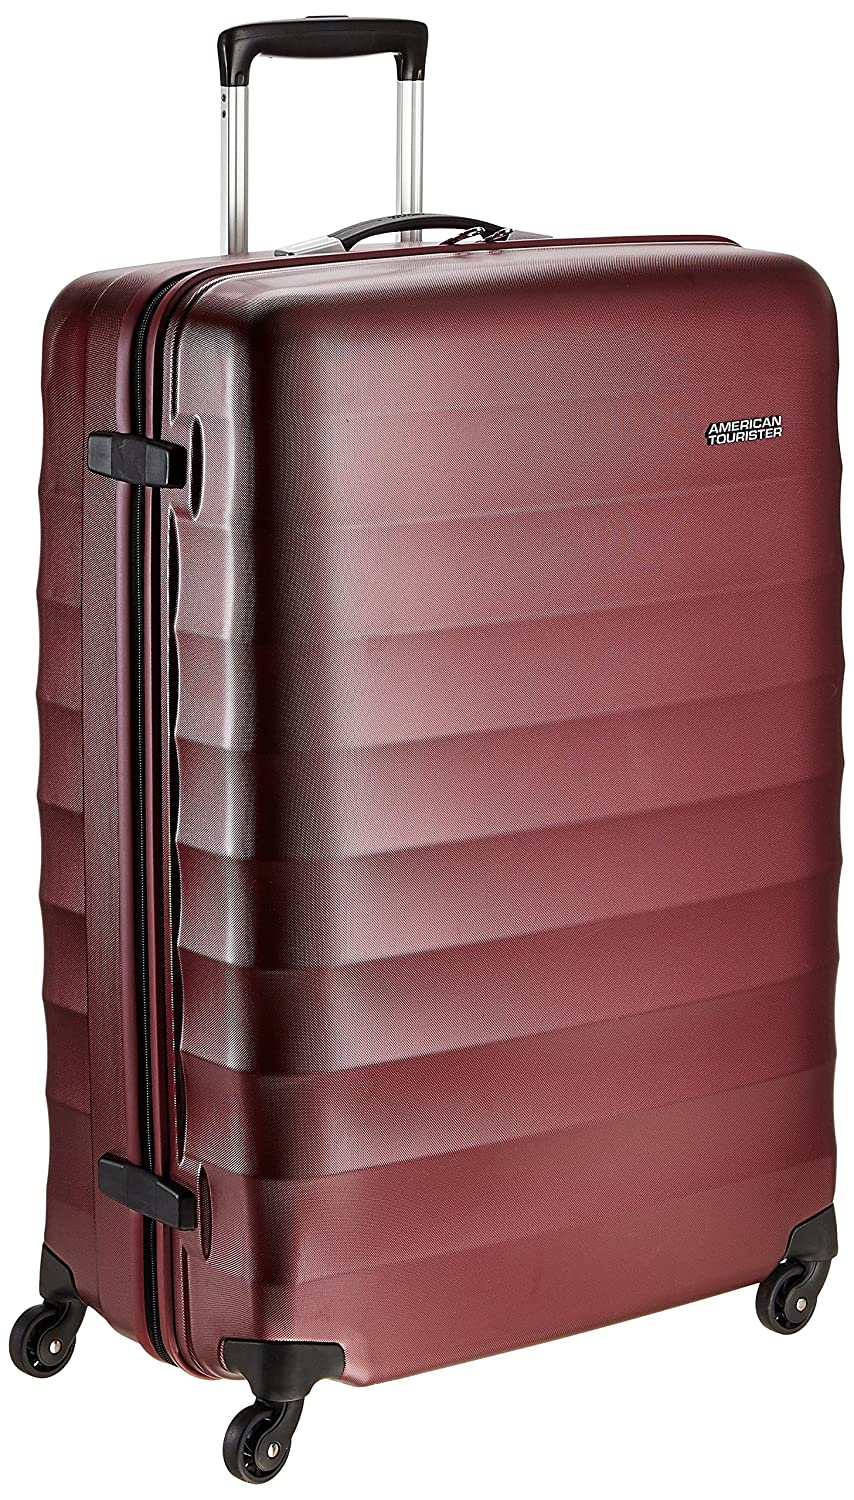 fe515b448 American Tourister Polyester 79 cms Crimson Red Hardsided Suitcase (71W (0)  10 003): Amazon.in: Bags, Wallets & Luggage